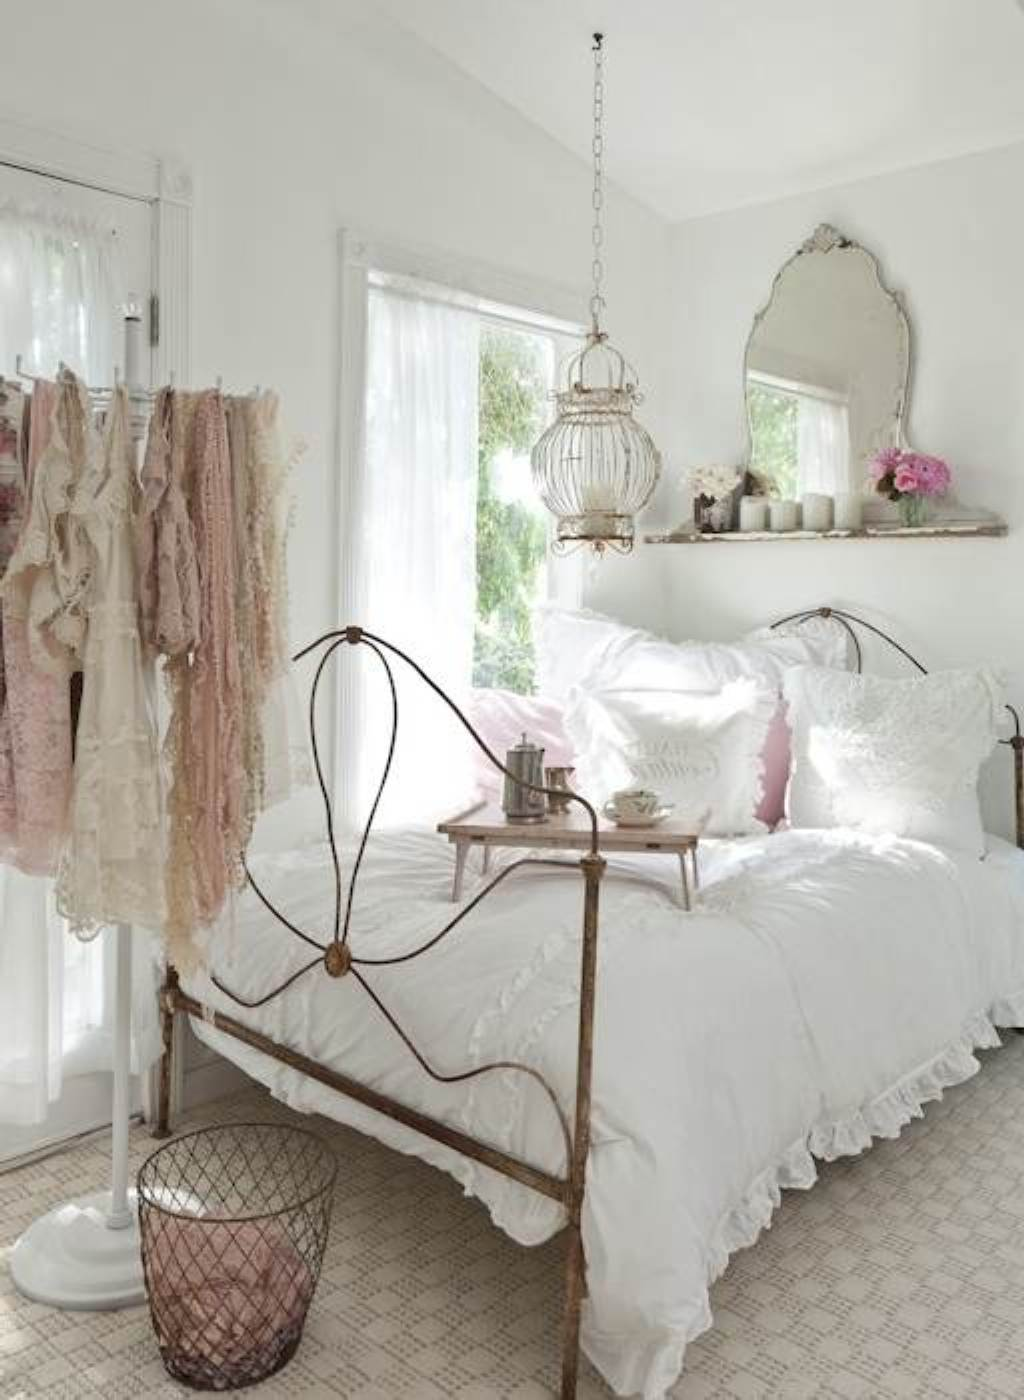 45 Impressive Vintage Bedroom Decor Ideas For 2018